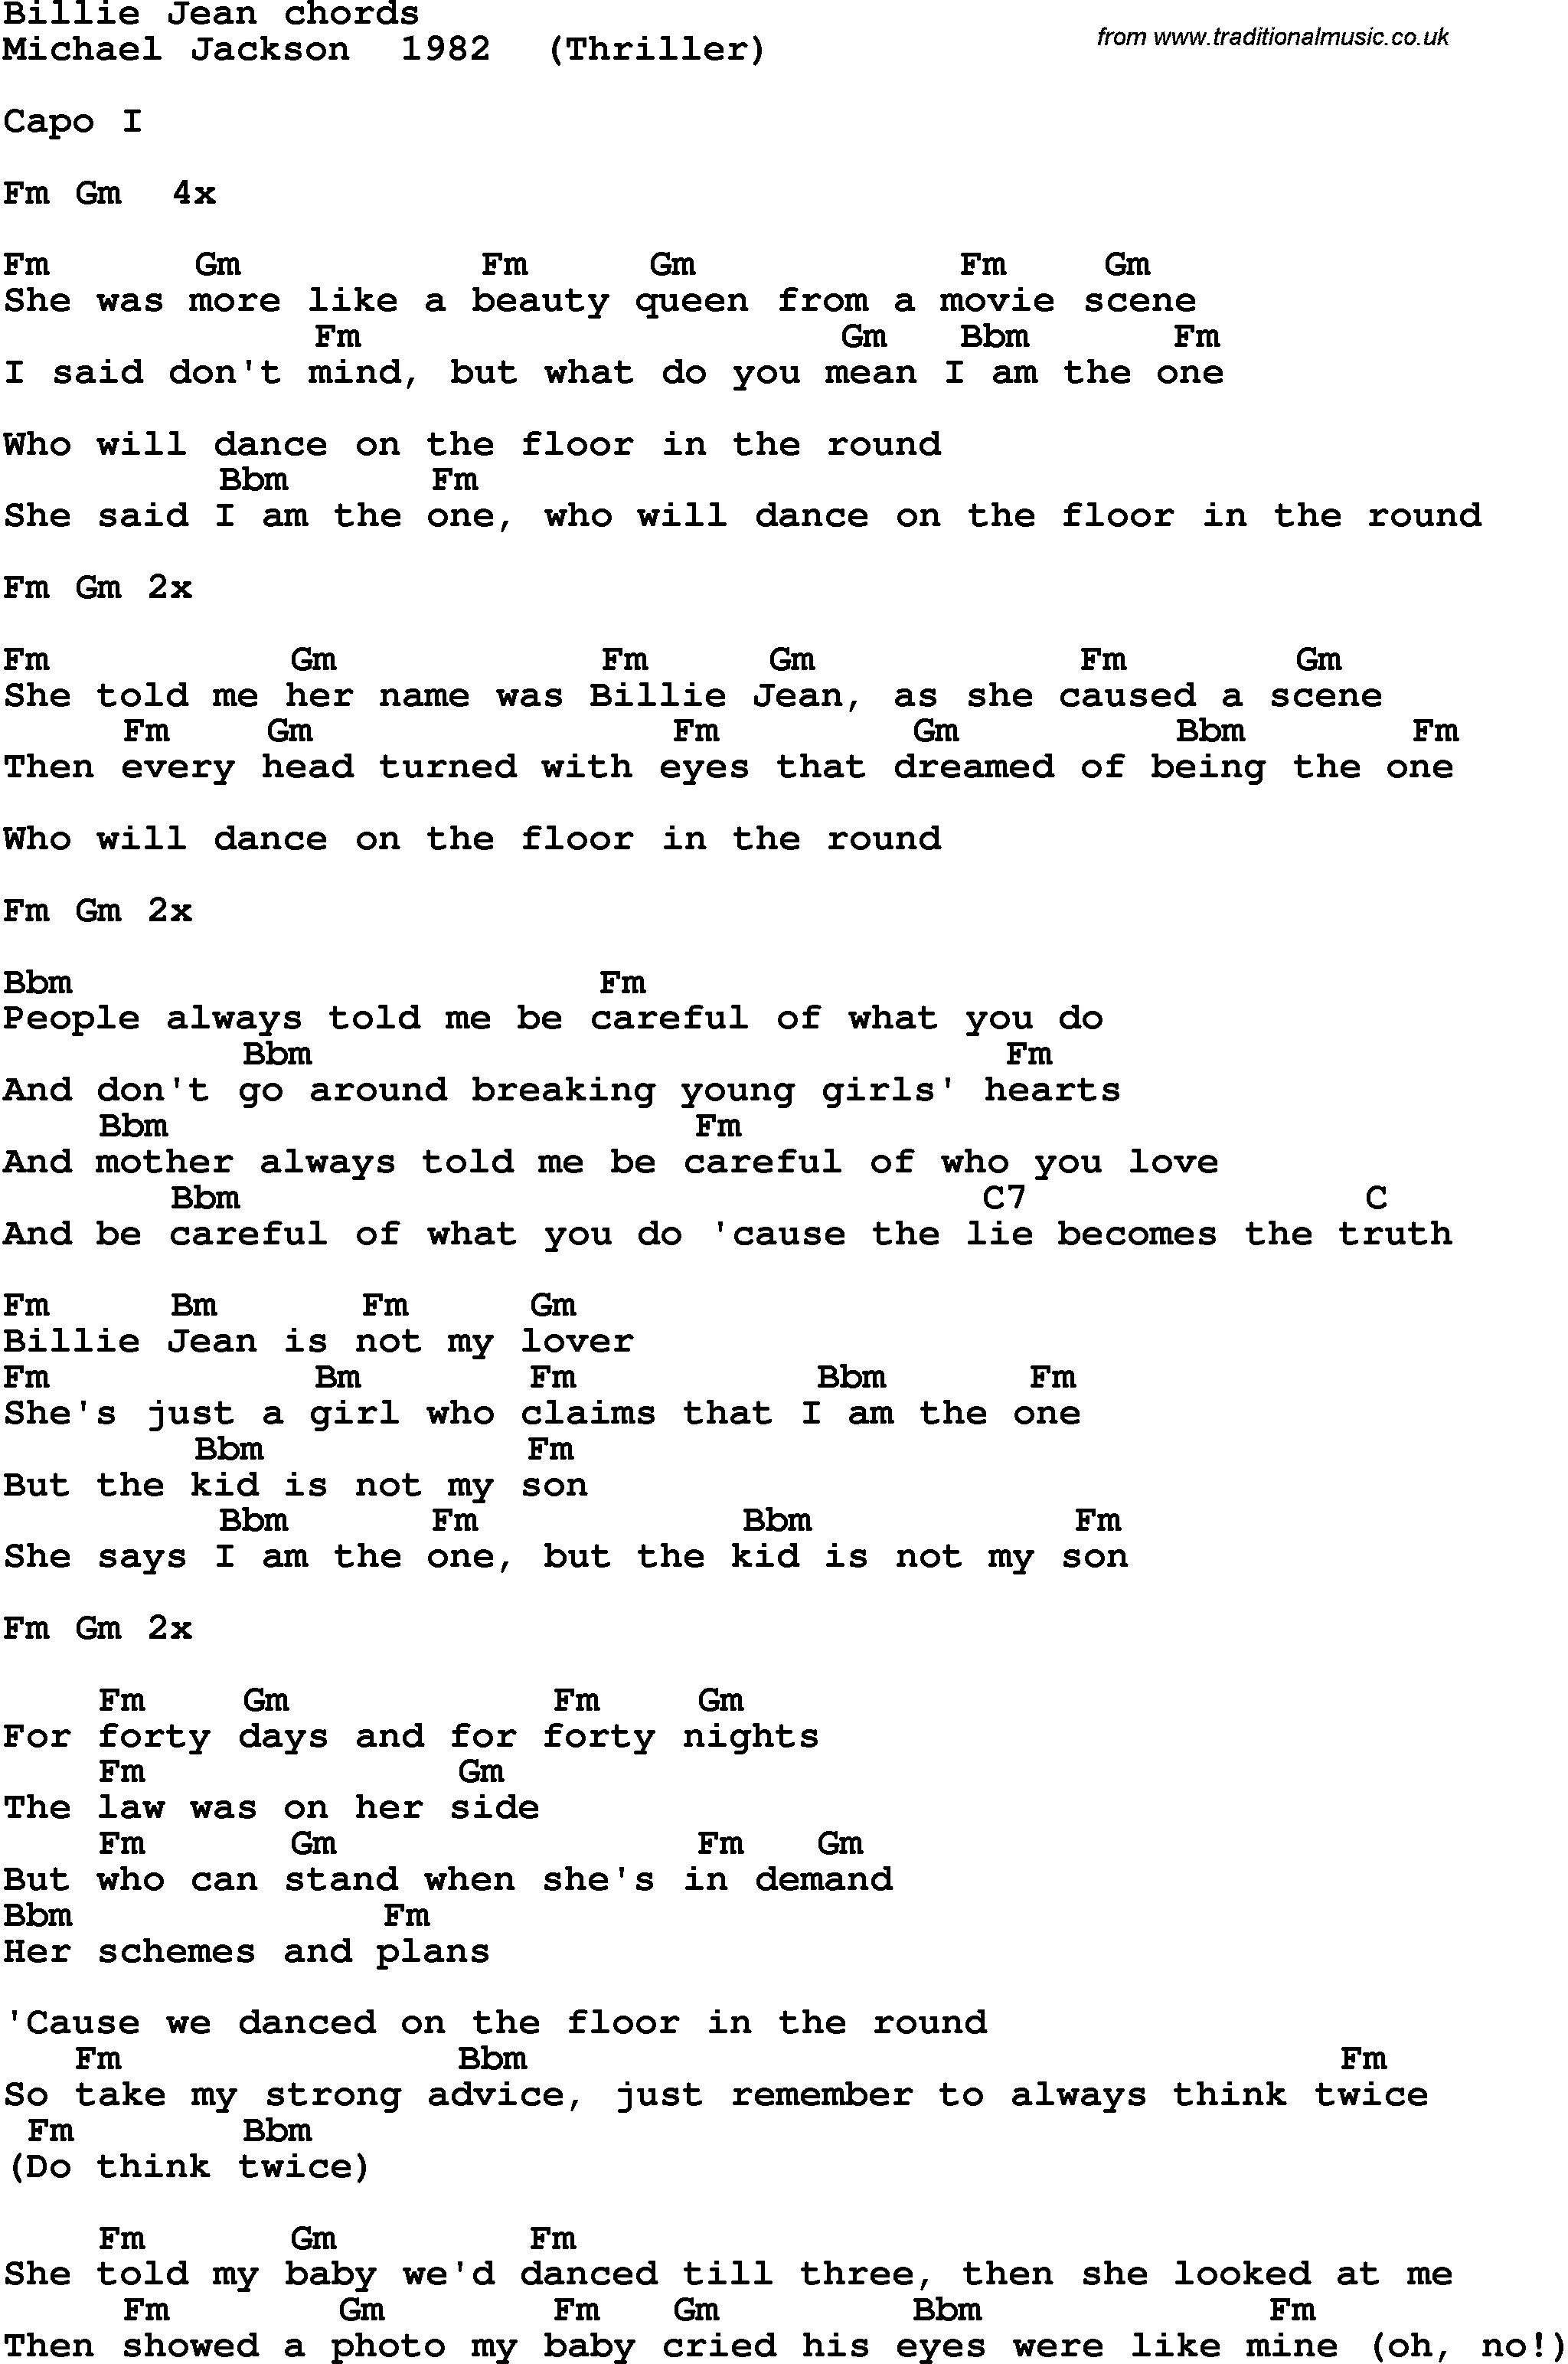 Lovely guitar chords for picture by kid rock edinburghensemble song lyrics with guitar chords for billie jeana hexwebz Images